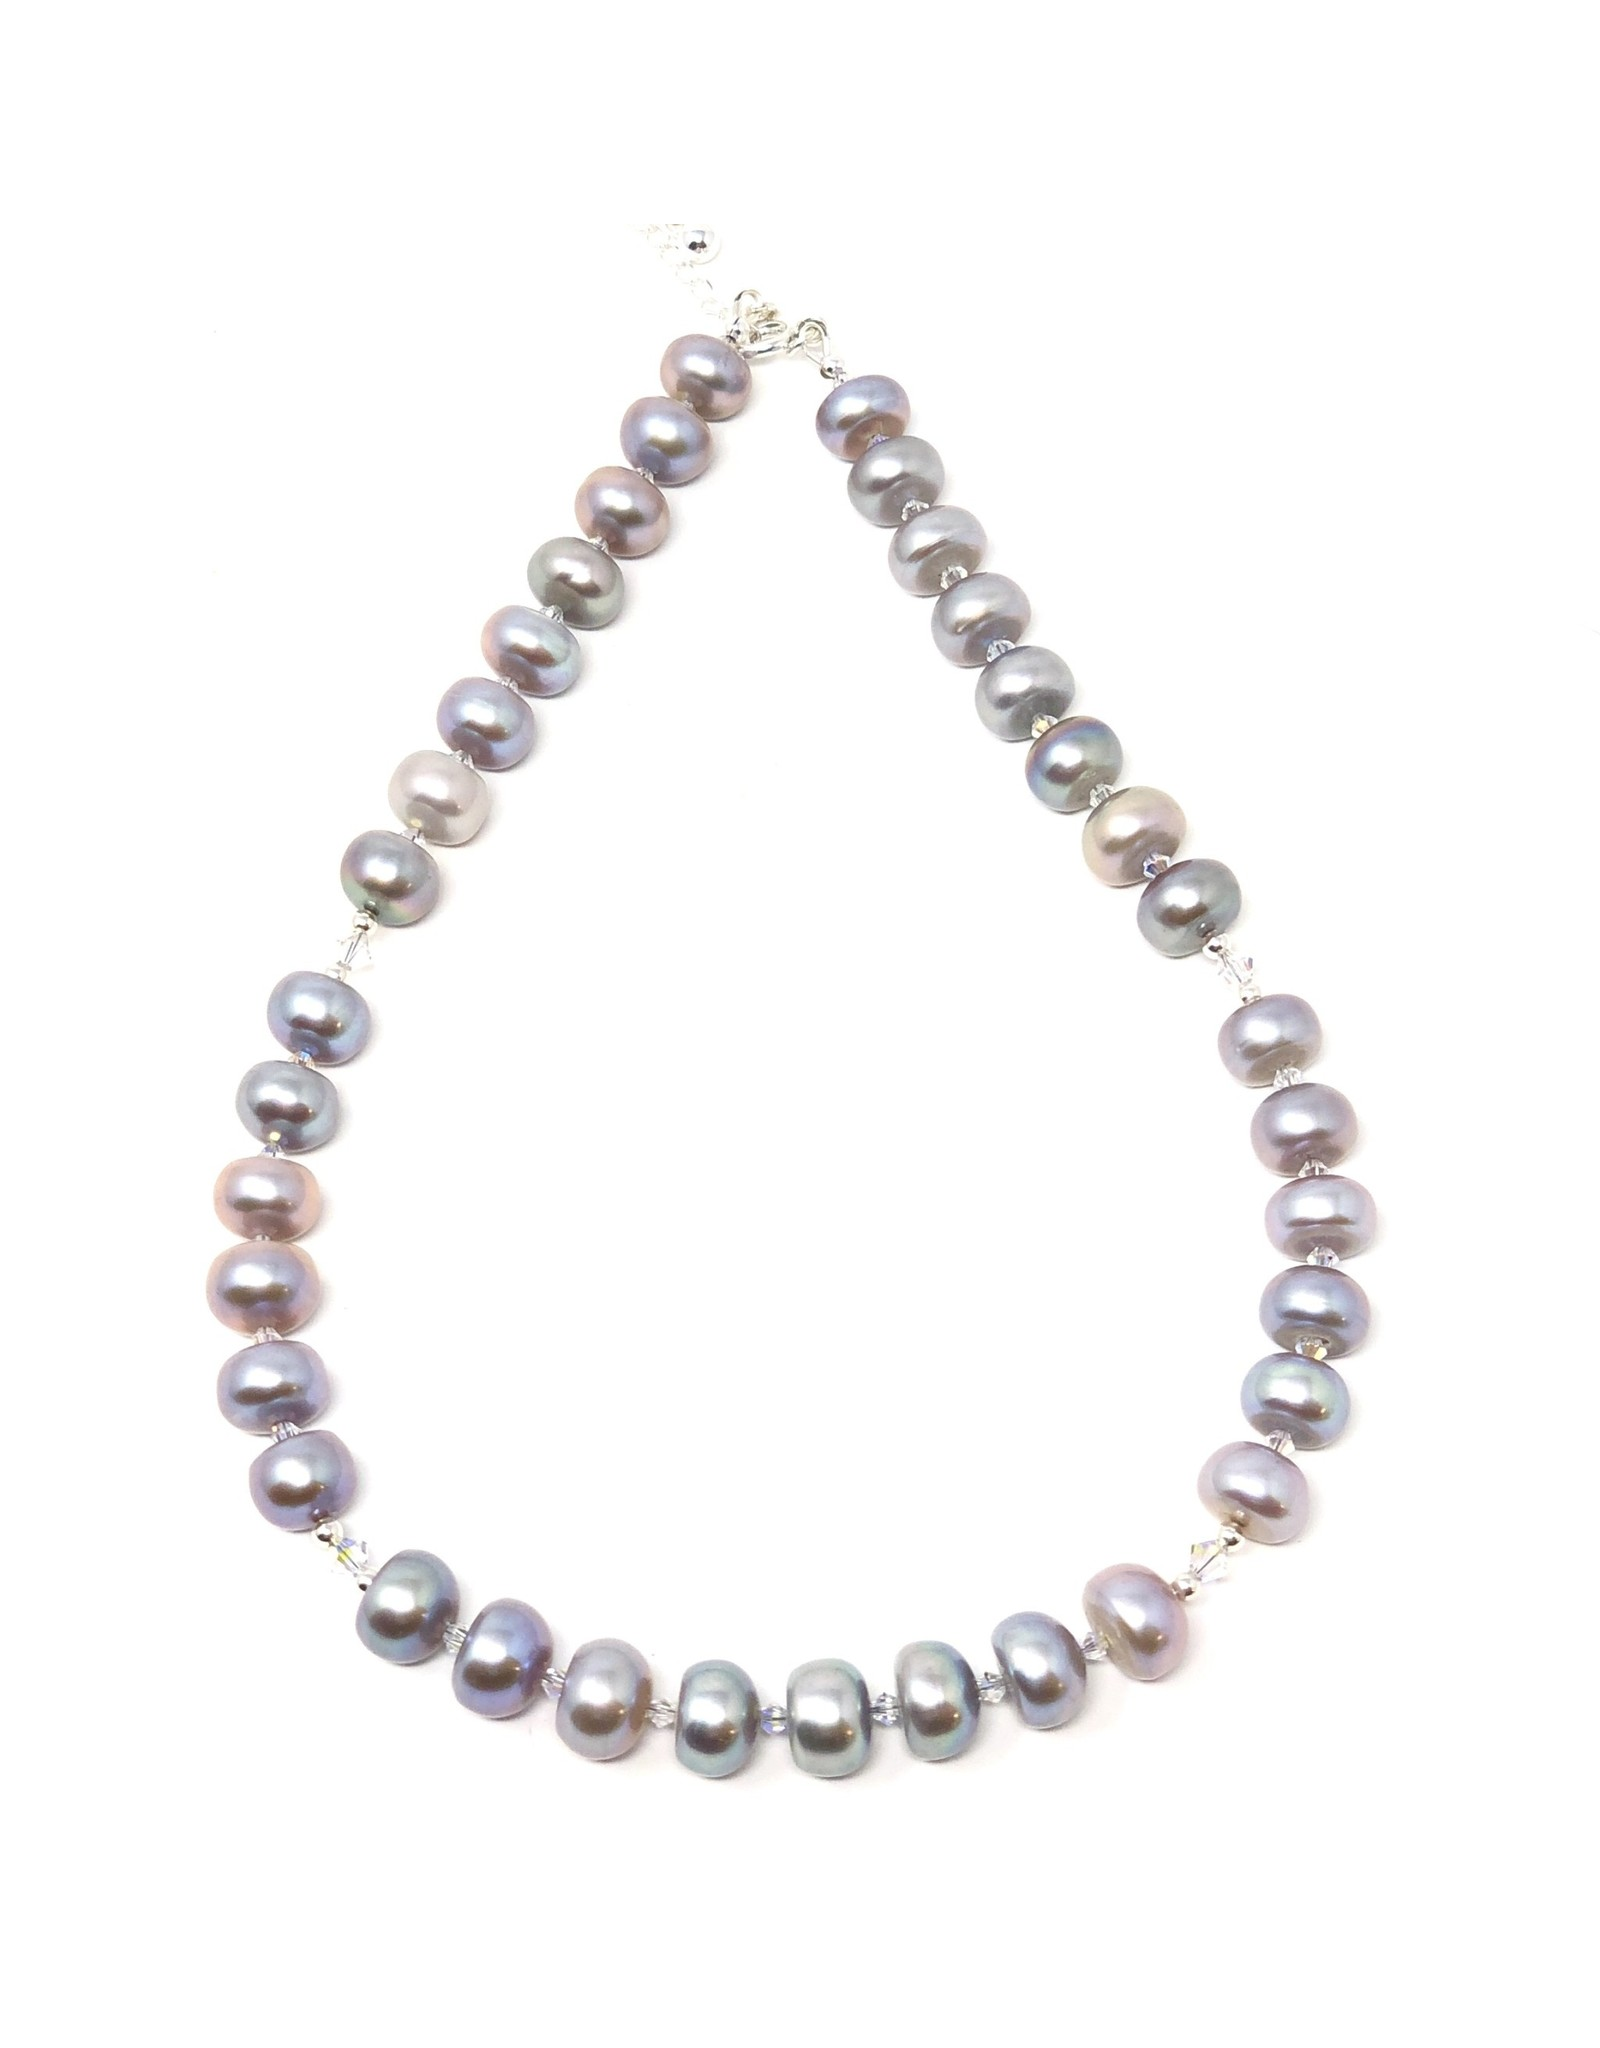 Iridescent Grey Pearl & Swarovski Necklace